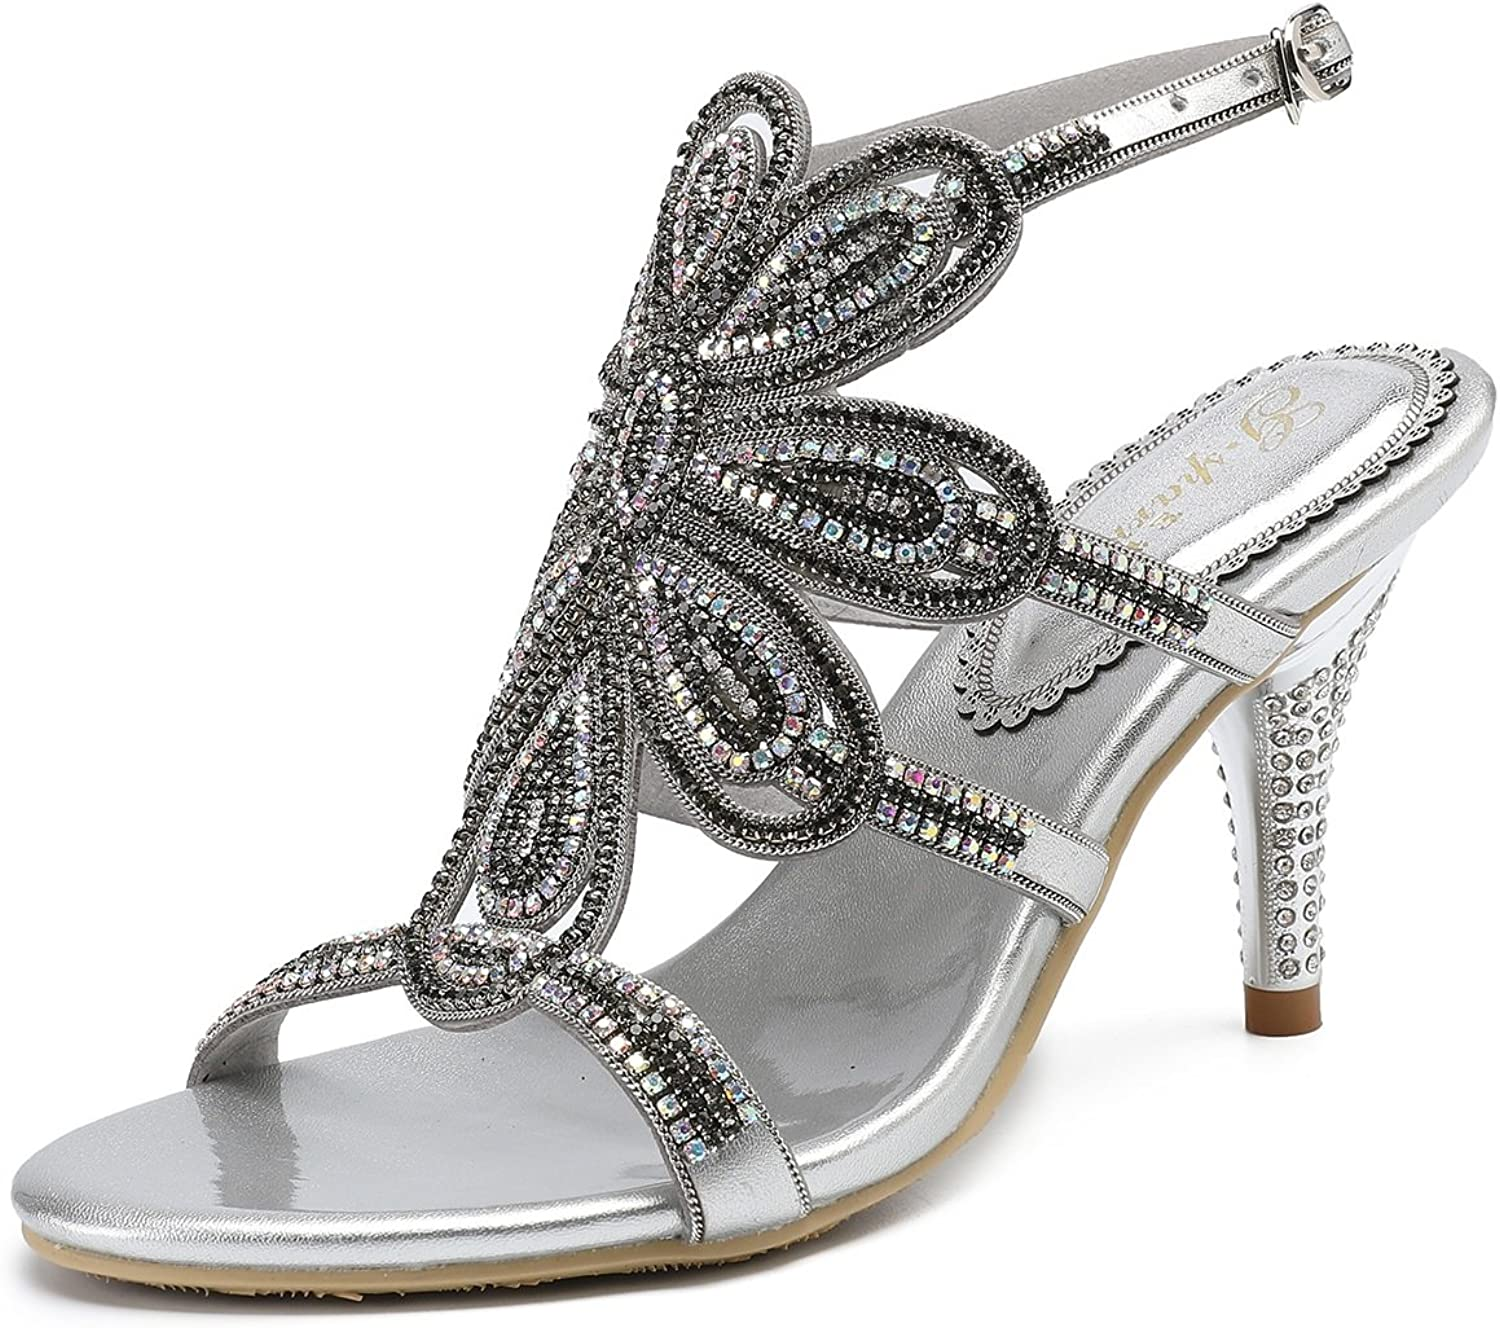 Women's shoes Leather Summer Club shoes Sandals Stiletto Heel Open Toe Rhinestone Glitter for Wedding Party & Evening Silver